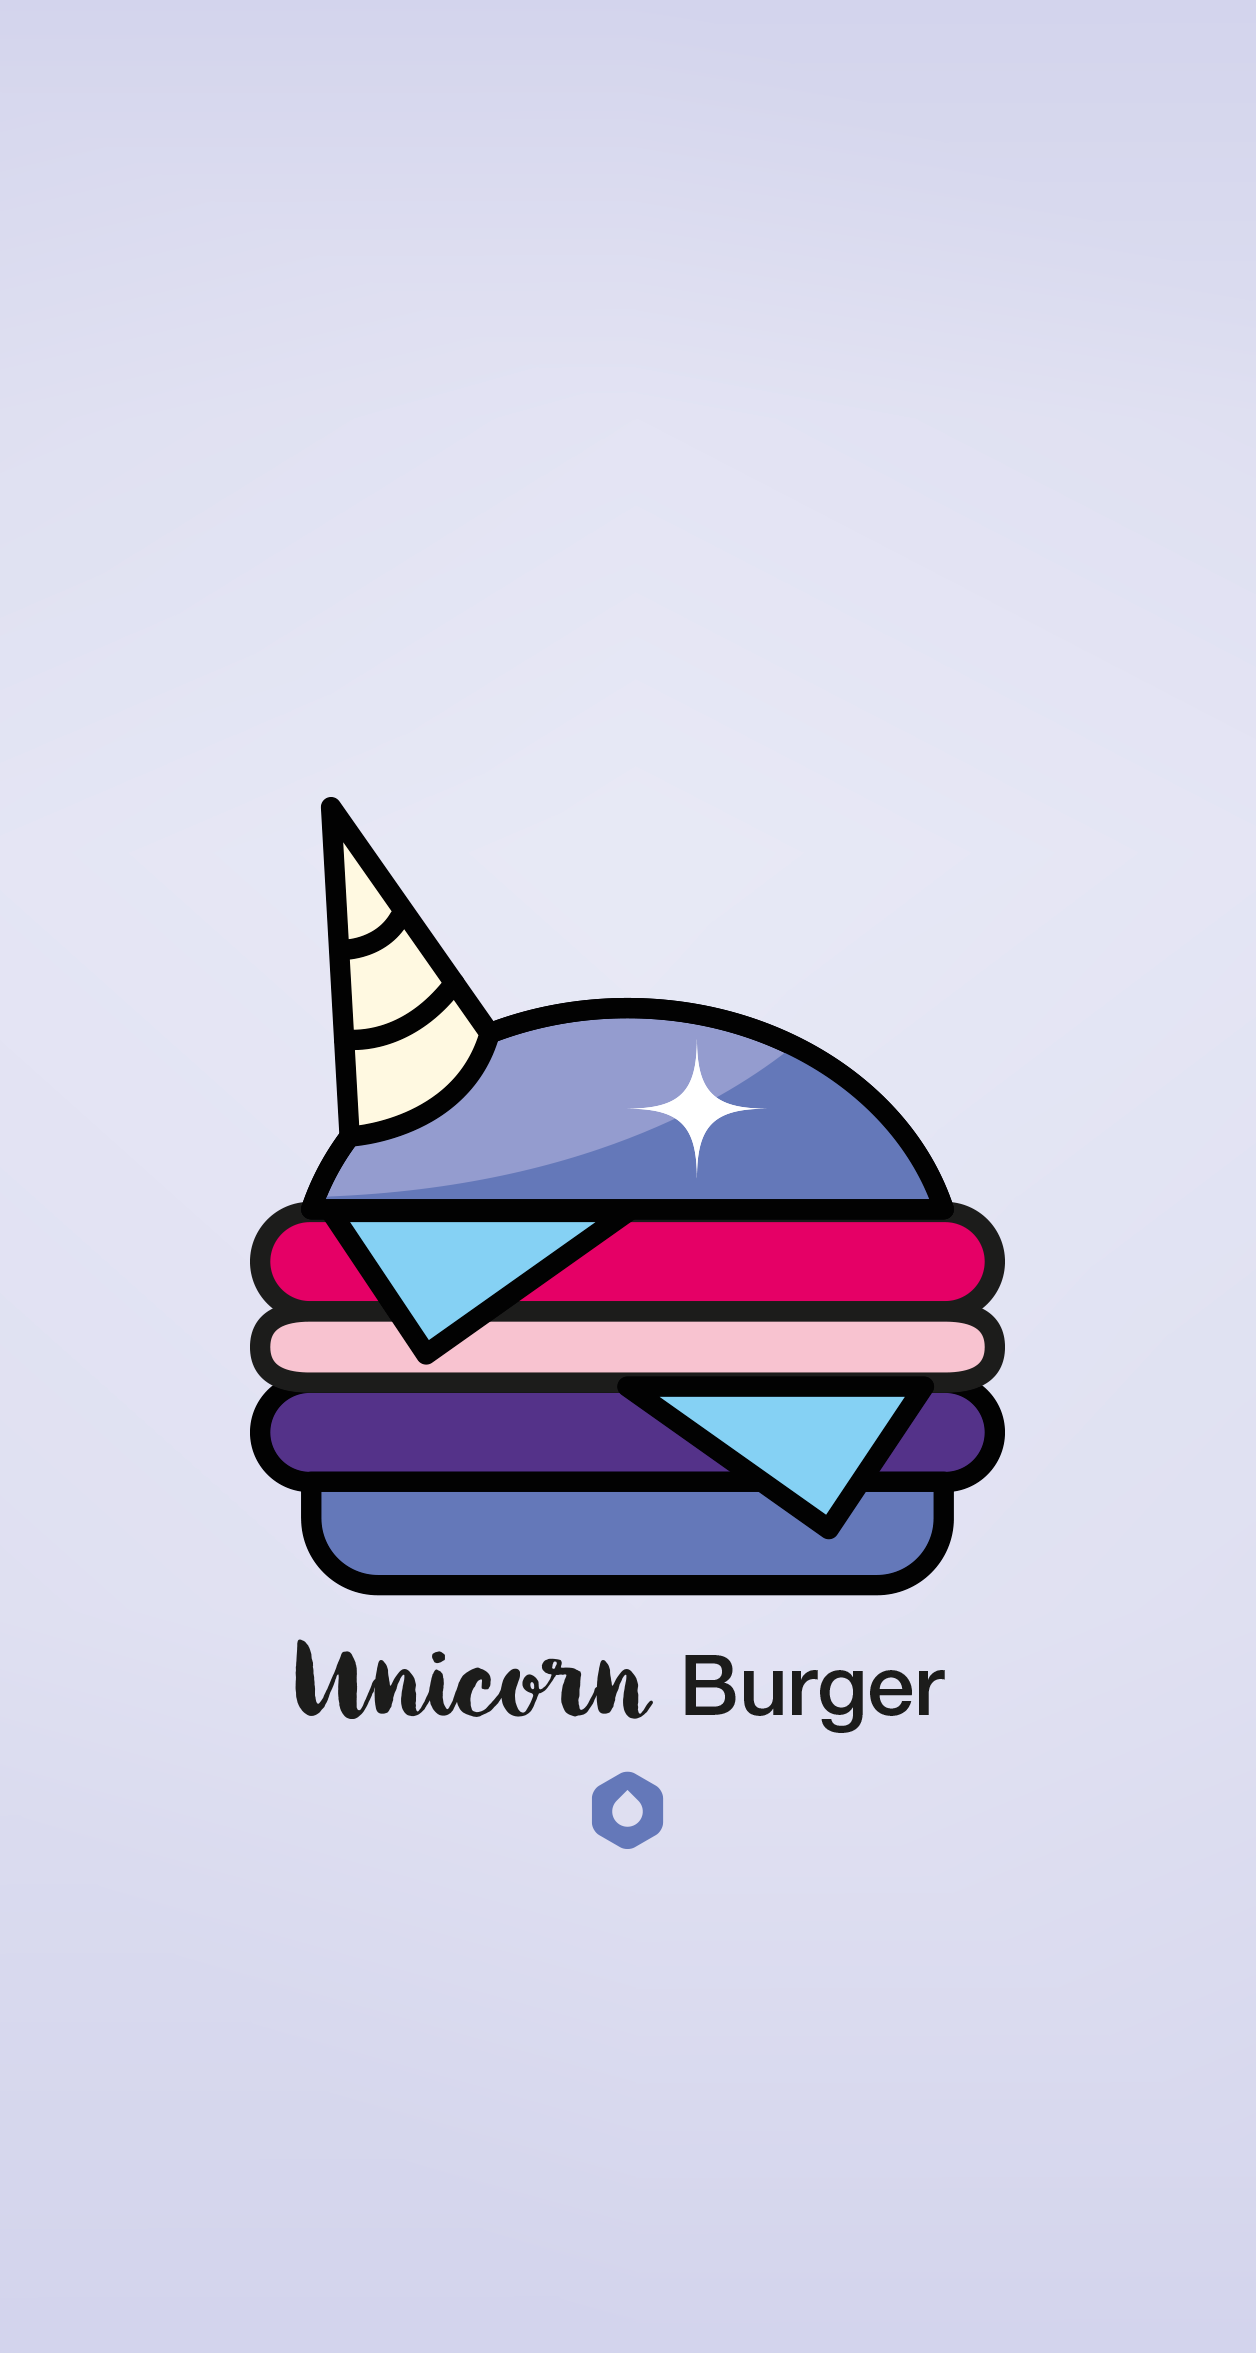 Wallpaper Pick Your Burger - iPhone6P - Unicorn